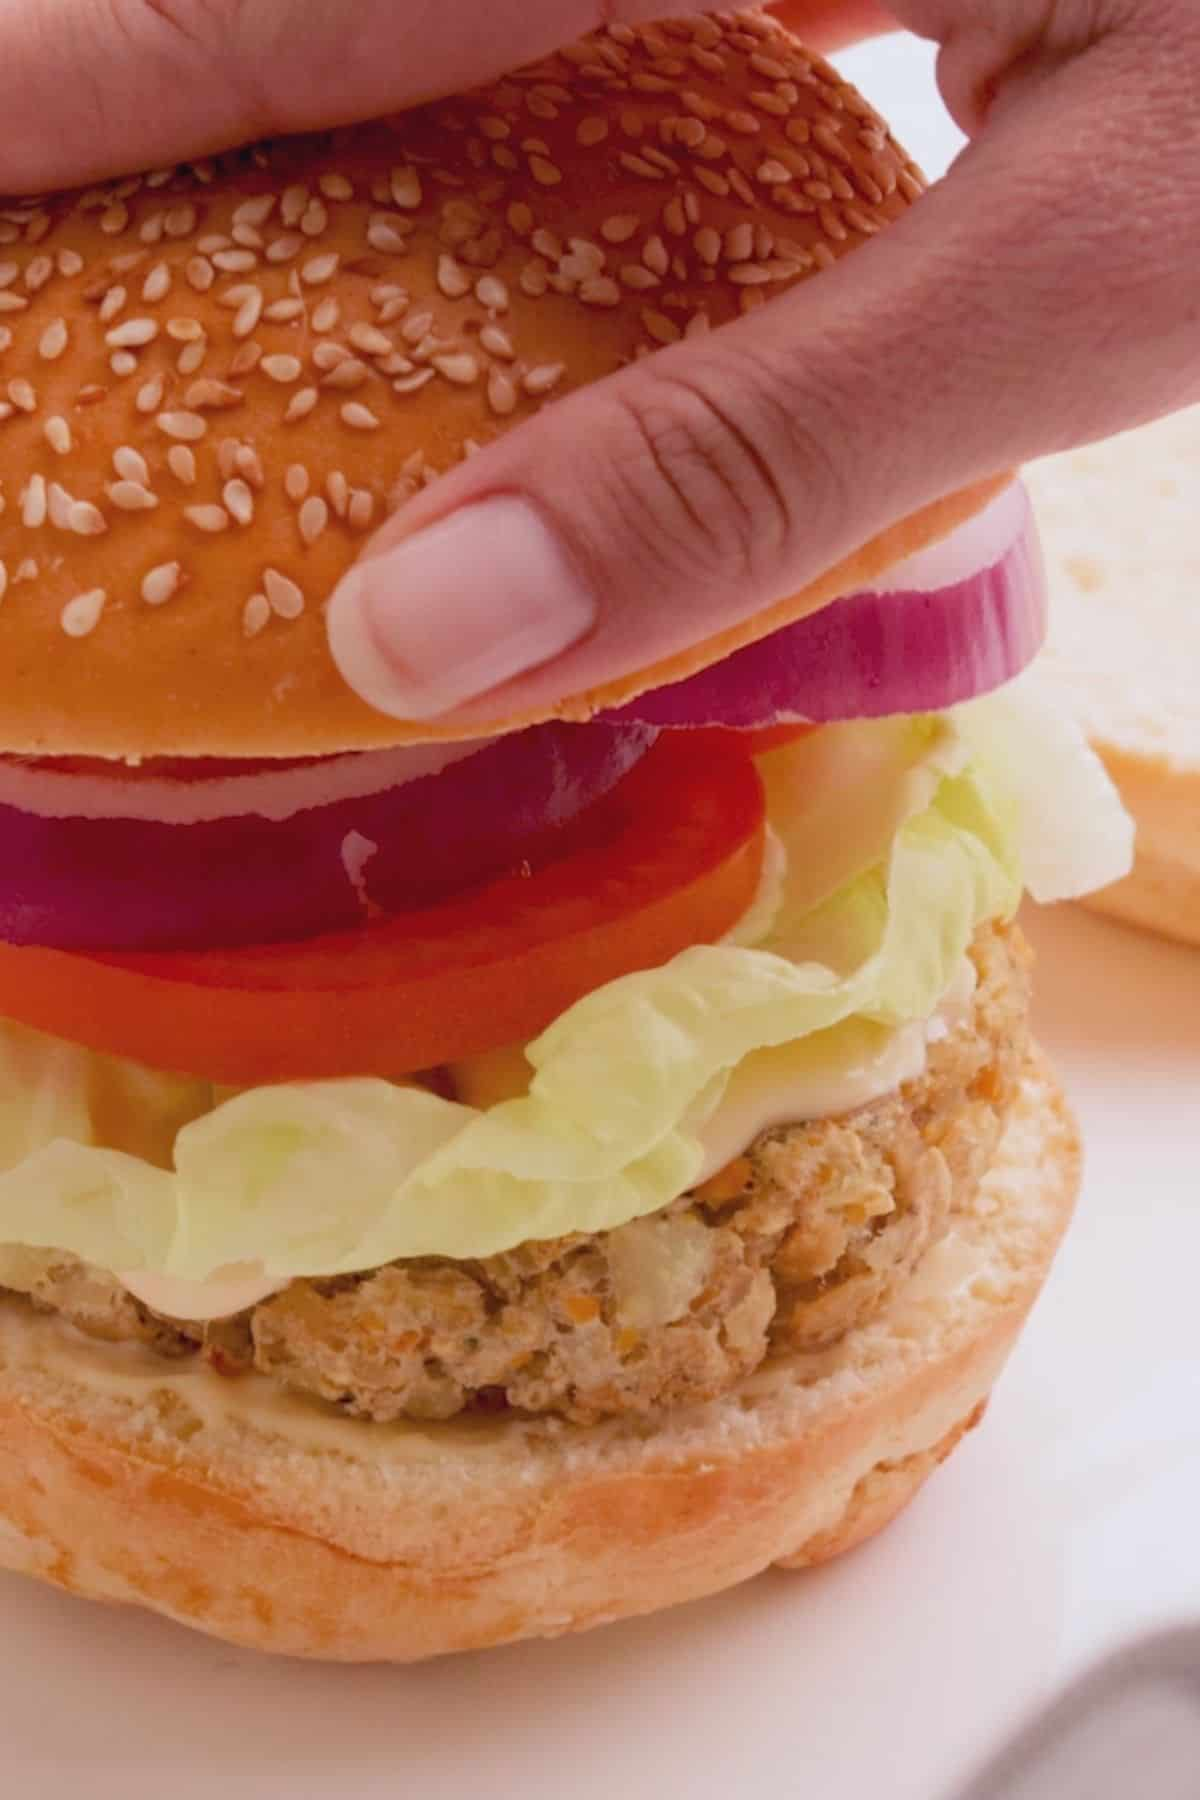 Hand placing top bun over burger and toppings.